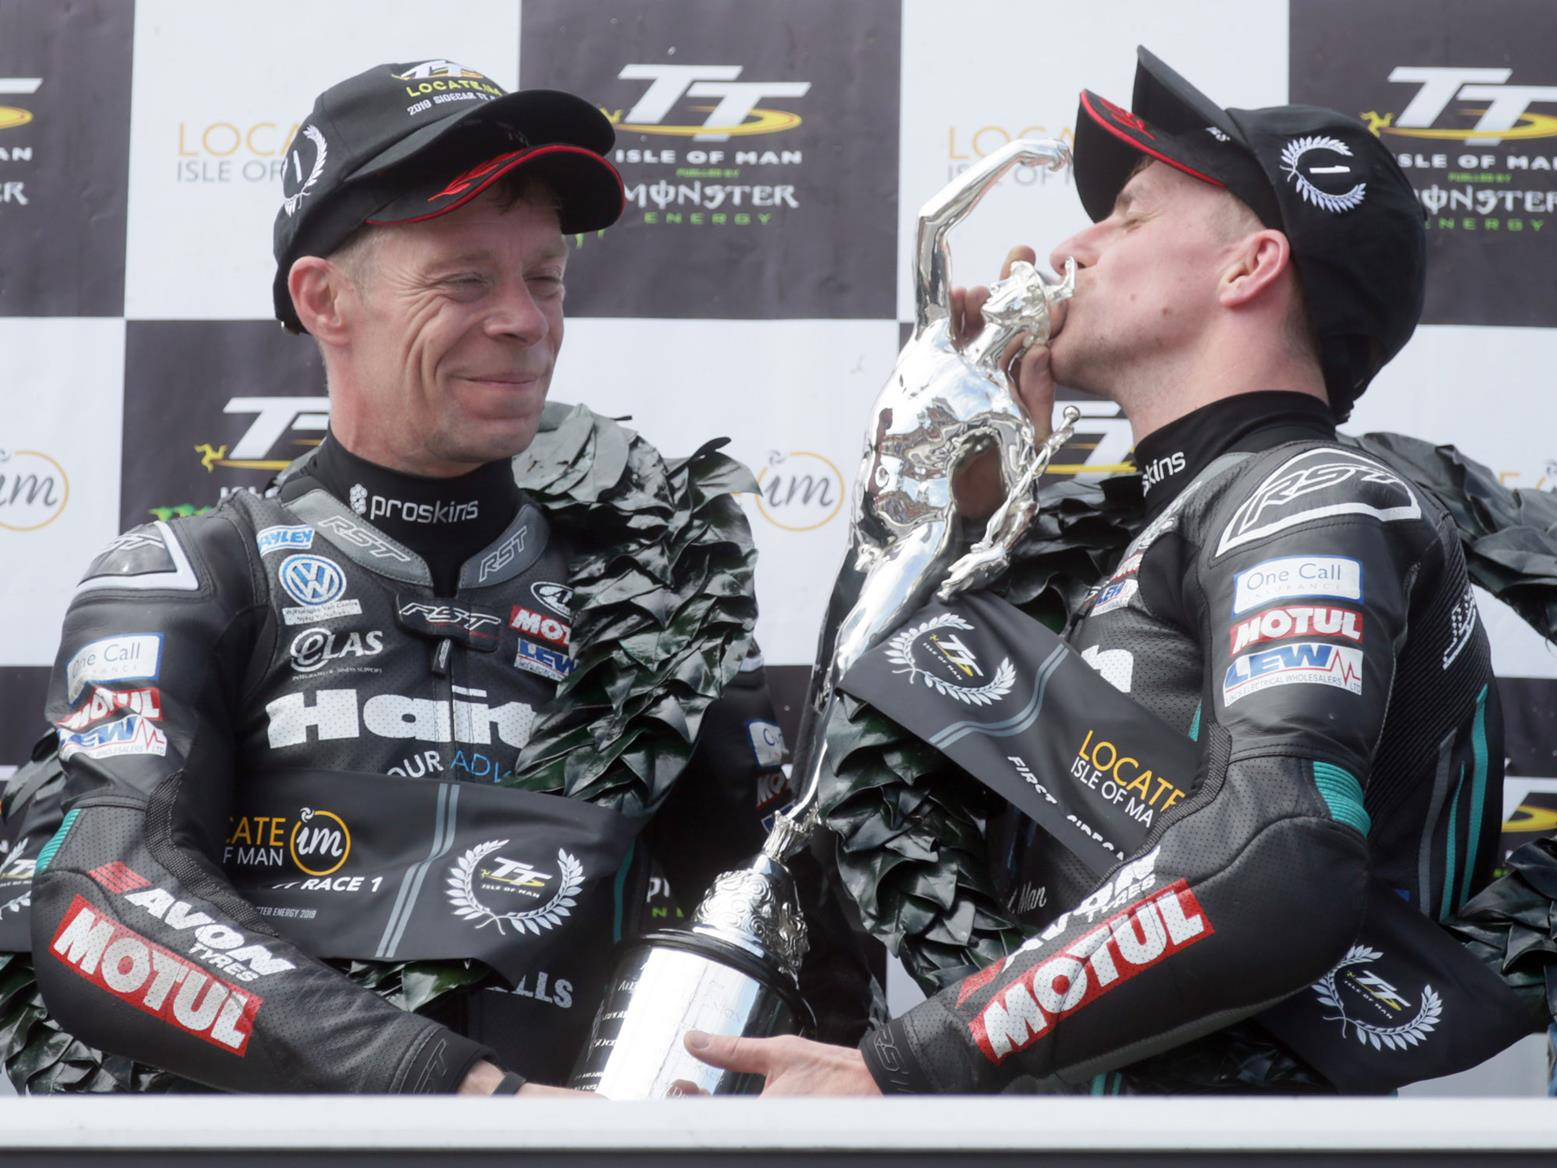 Ben and Tom Birchall win Sidecar TT race at 2019 IoM